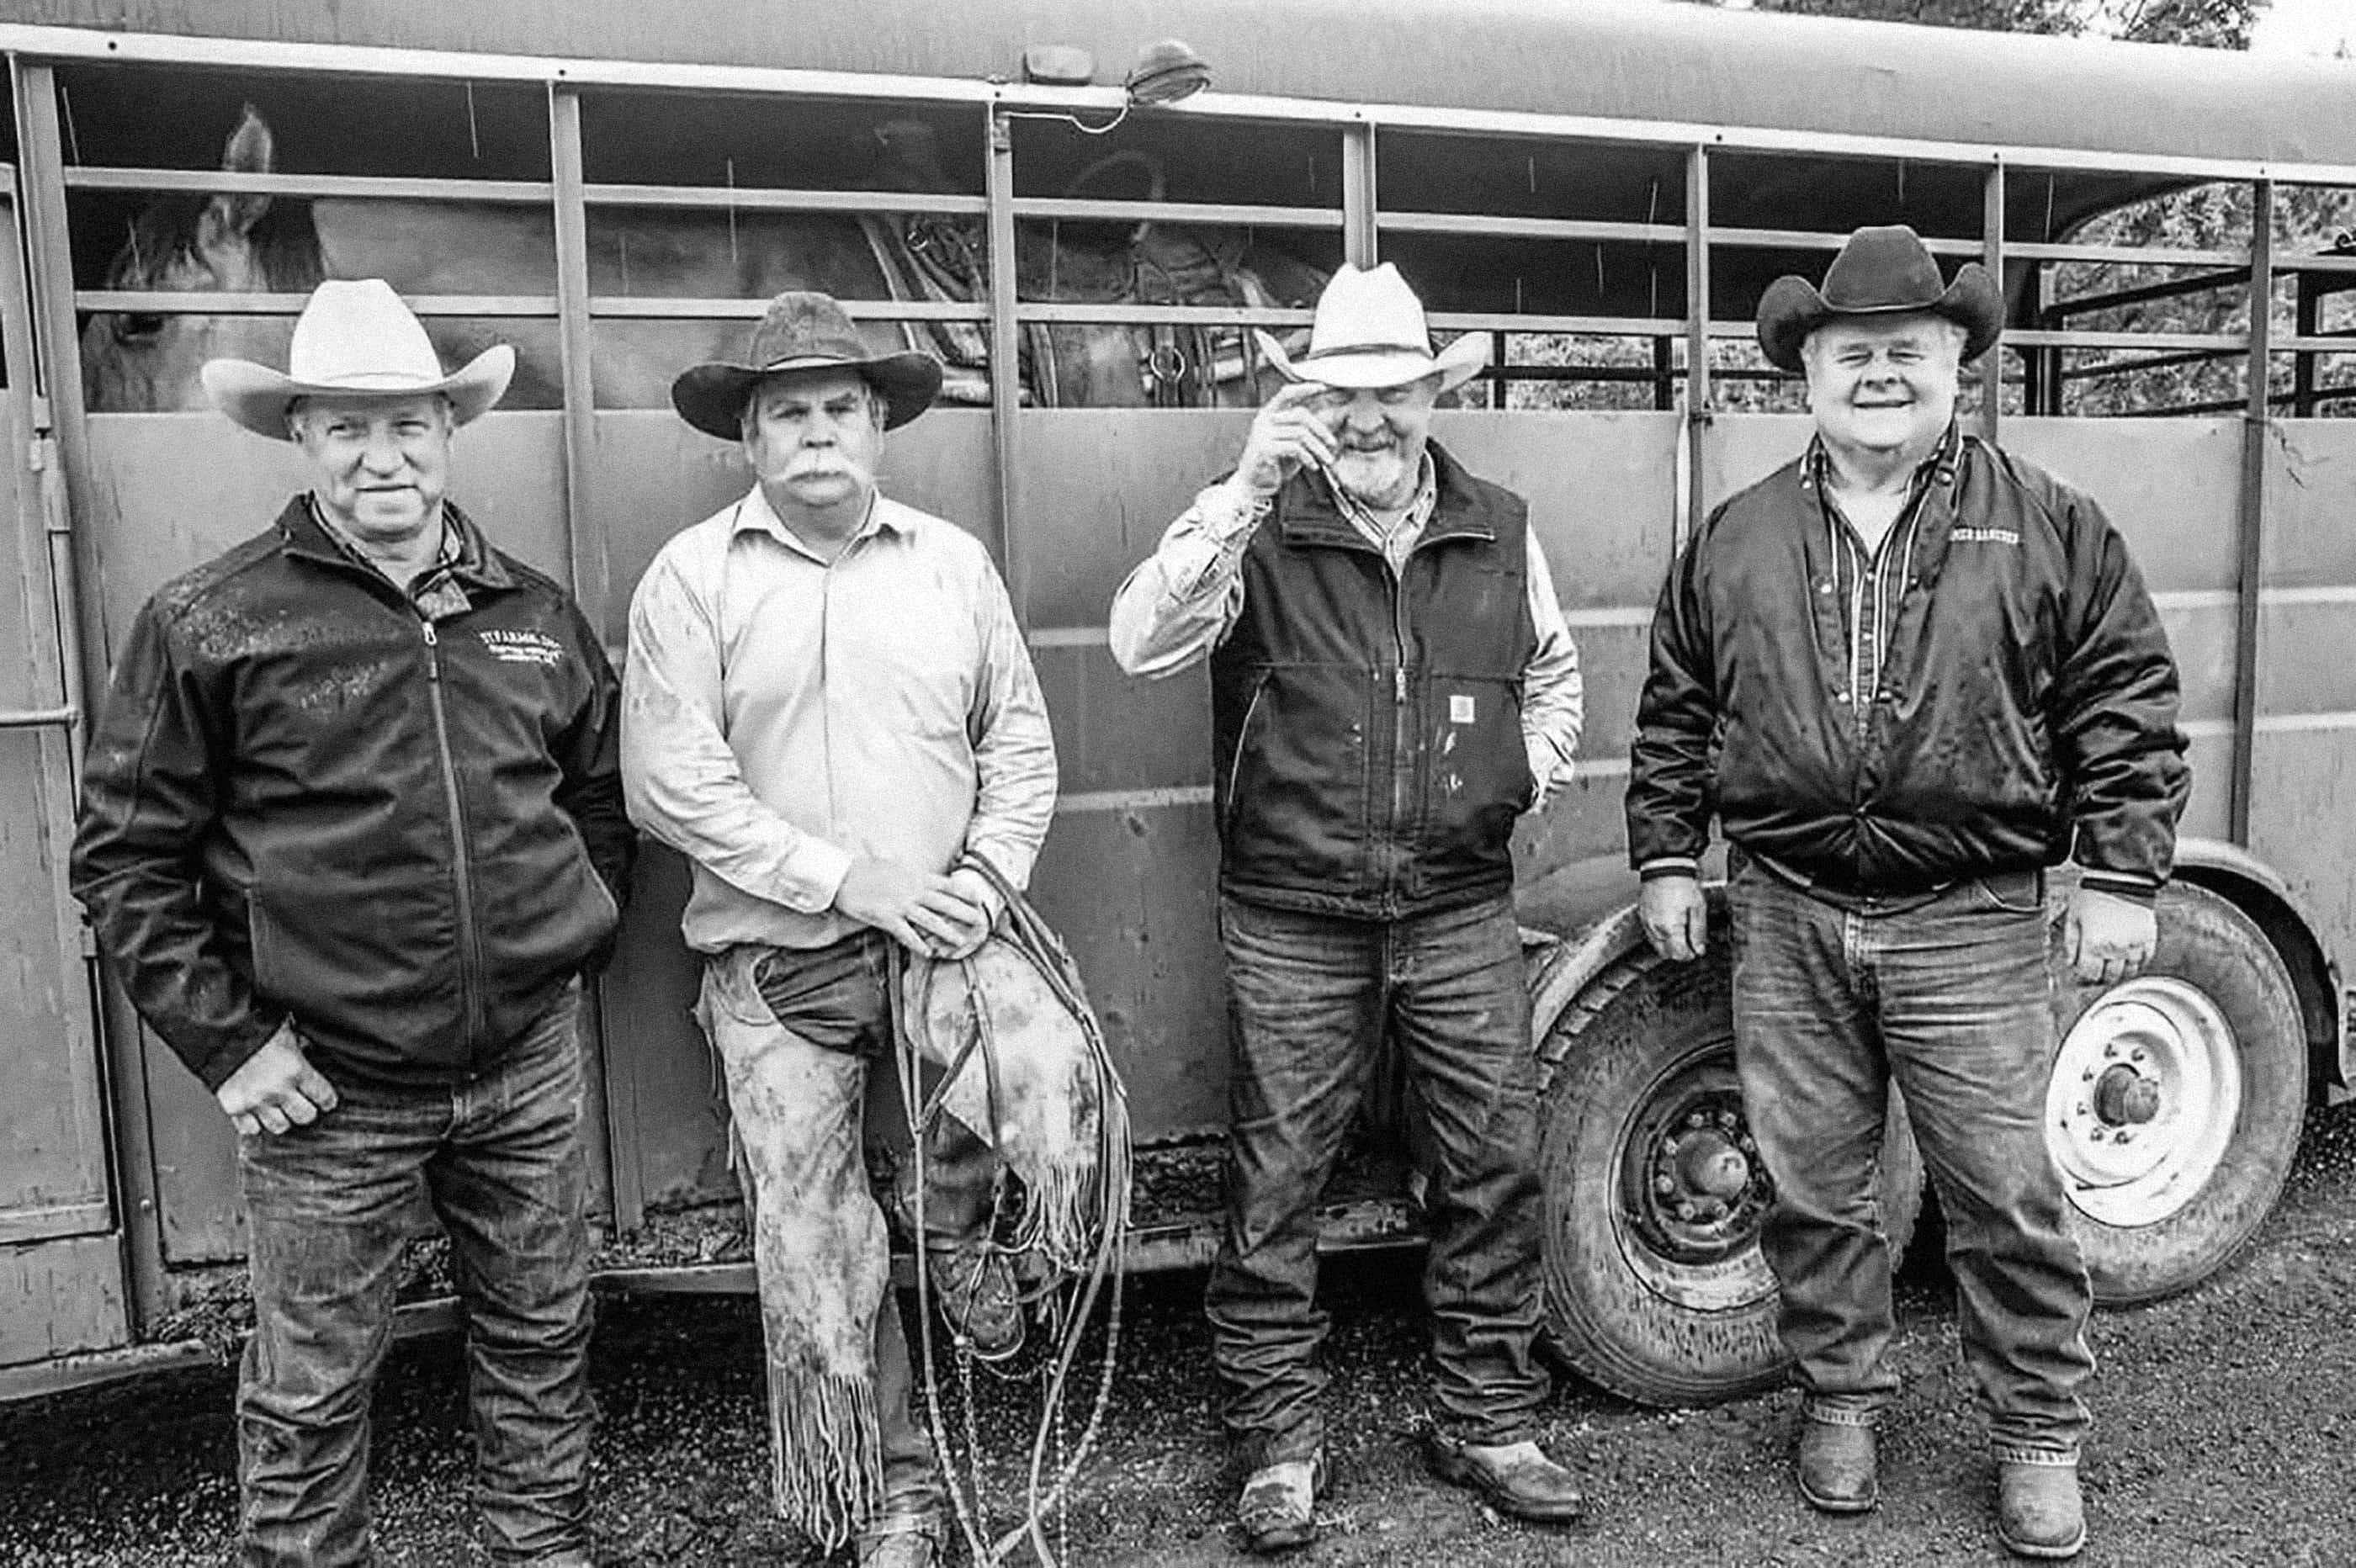 Four ranchers pose for camera against horse trailer; Mehrten Homer pictured to right